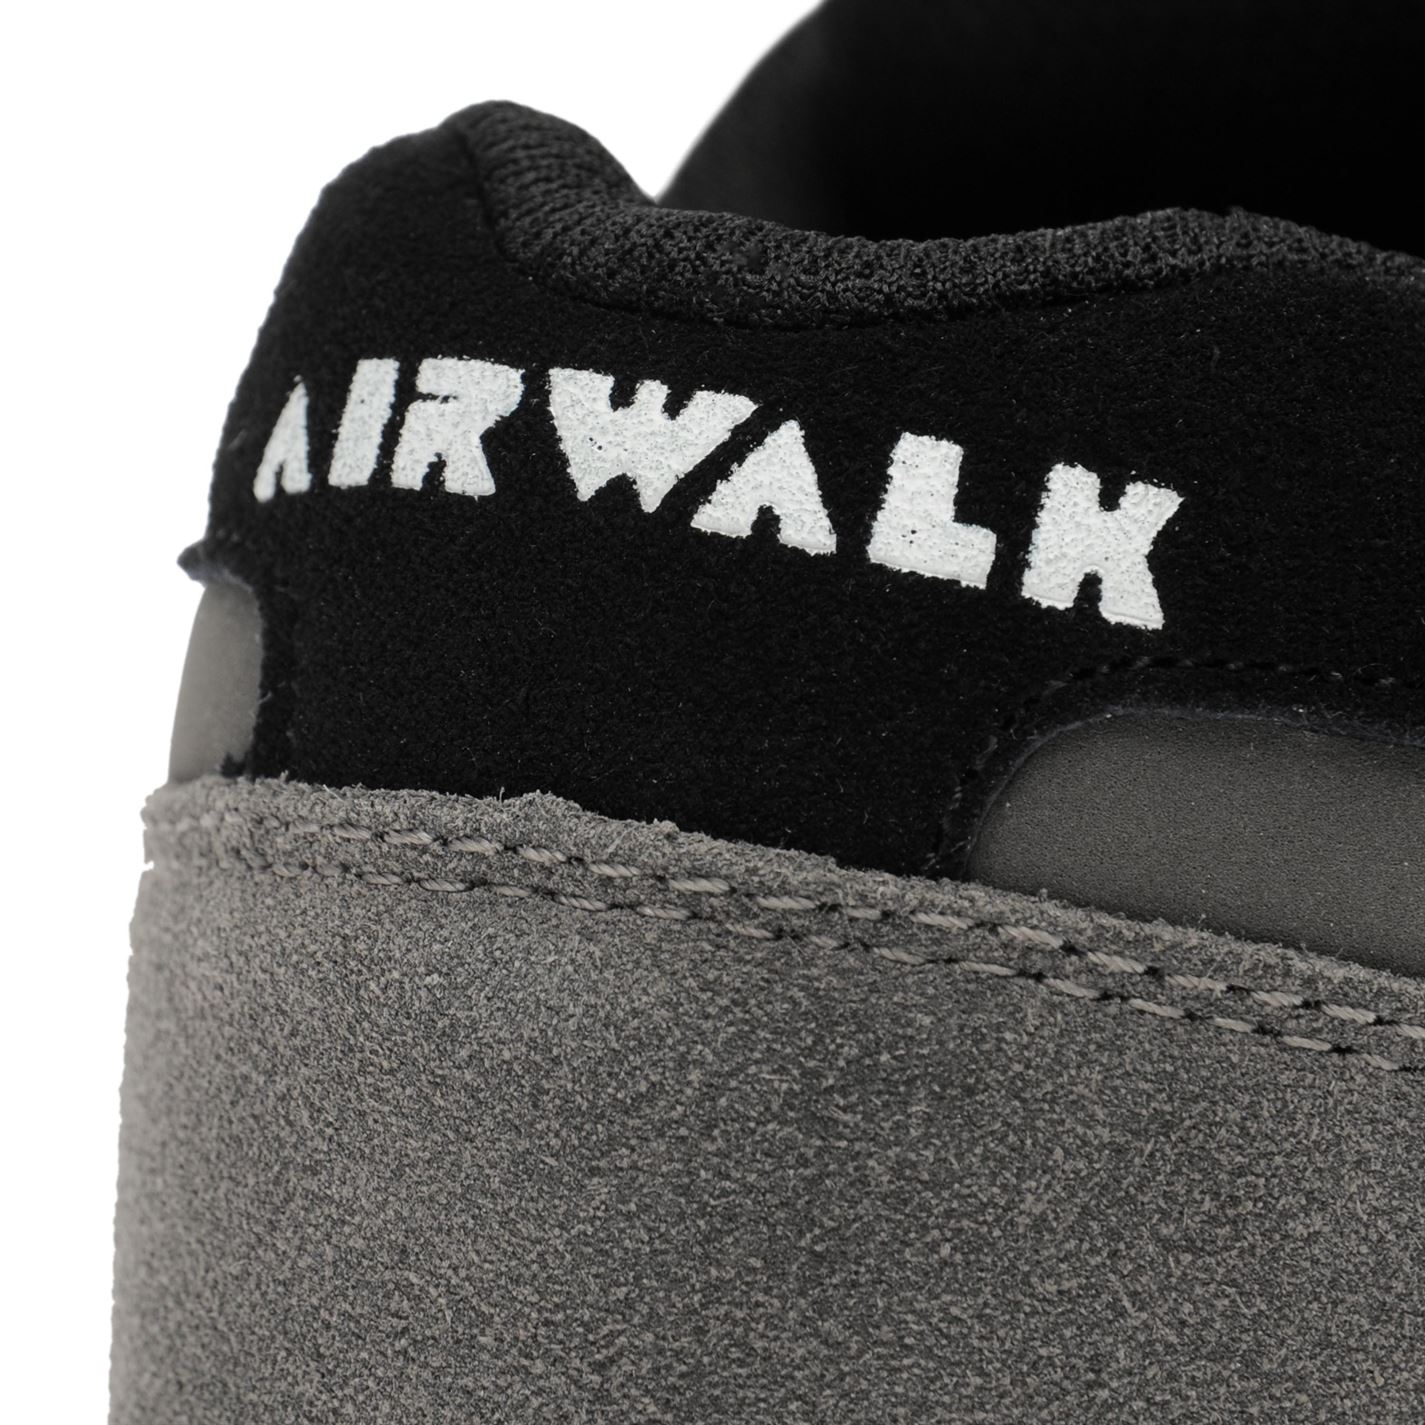 Airwalk-Mens-Brock-Skate-Shoes-Lace-Up-Suede-Accents-Sport-Casual-Trainers thumbnail 26